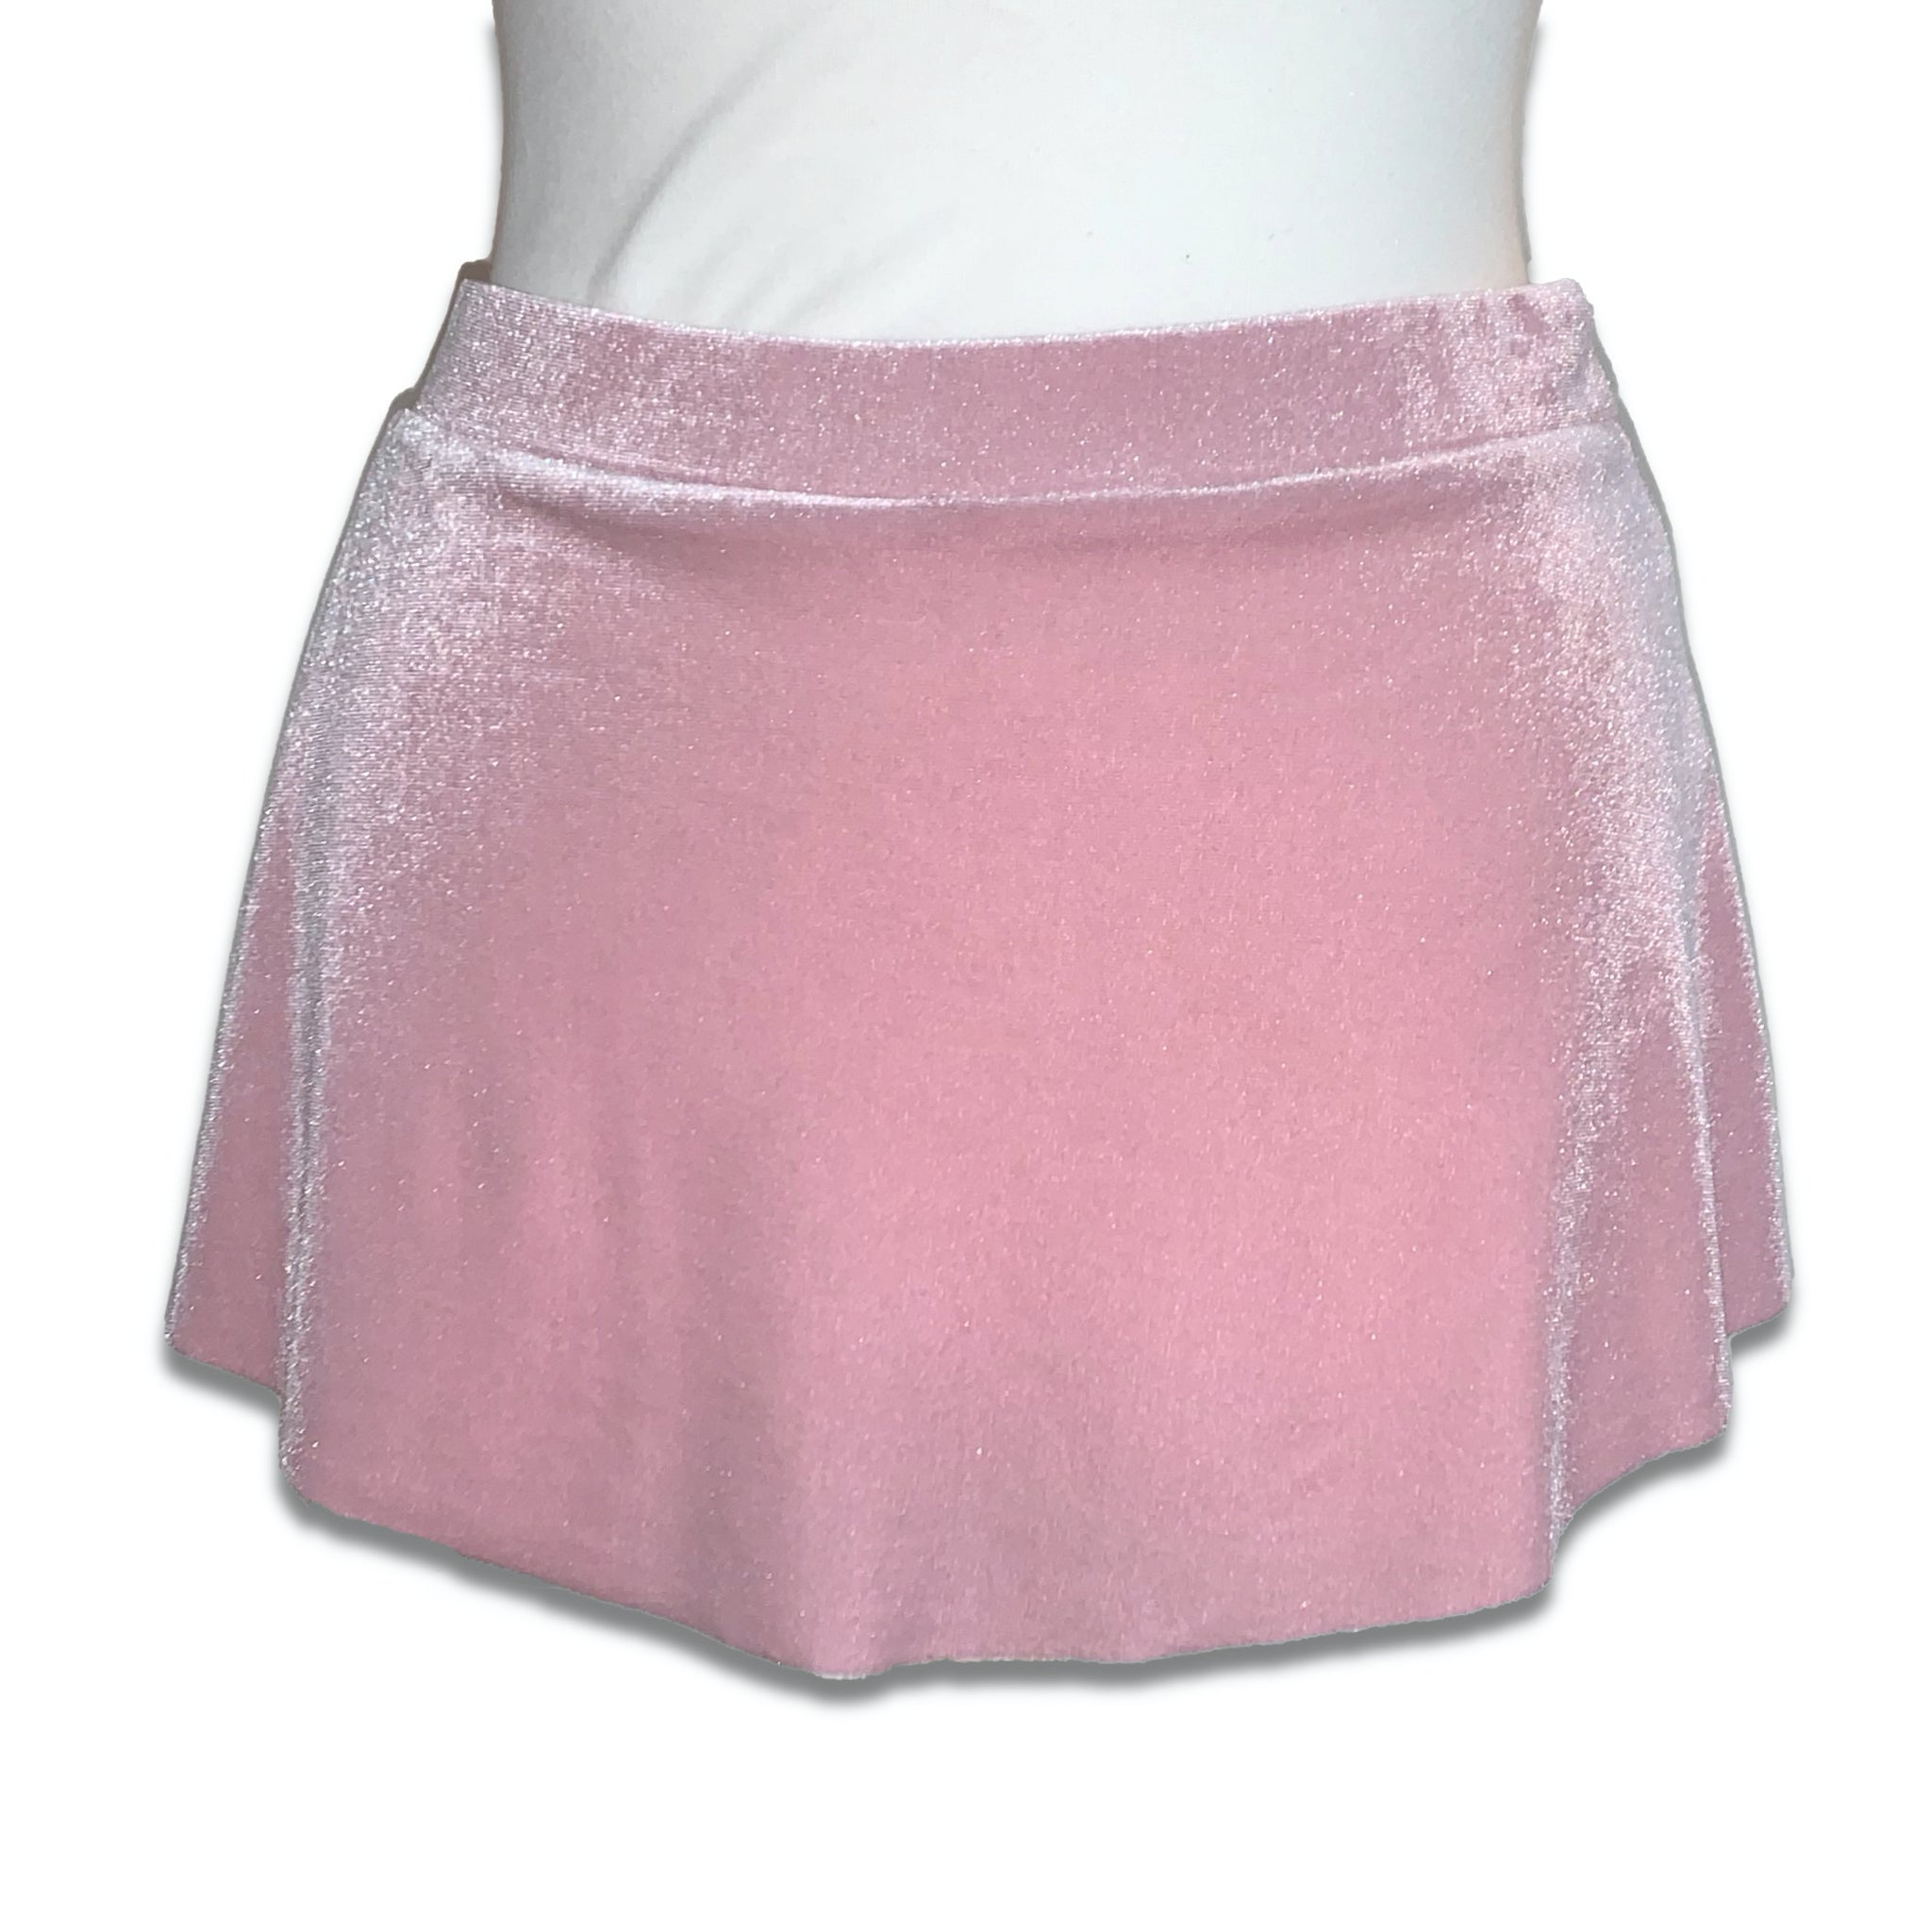 TC1077V- Tendu Sleek Velvet Skirt